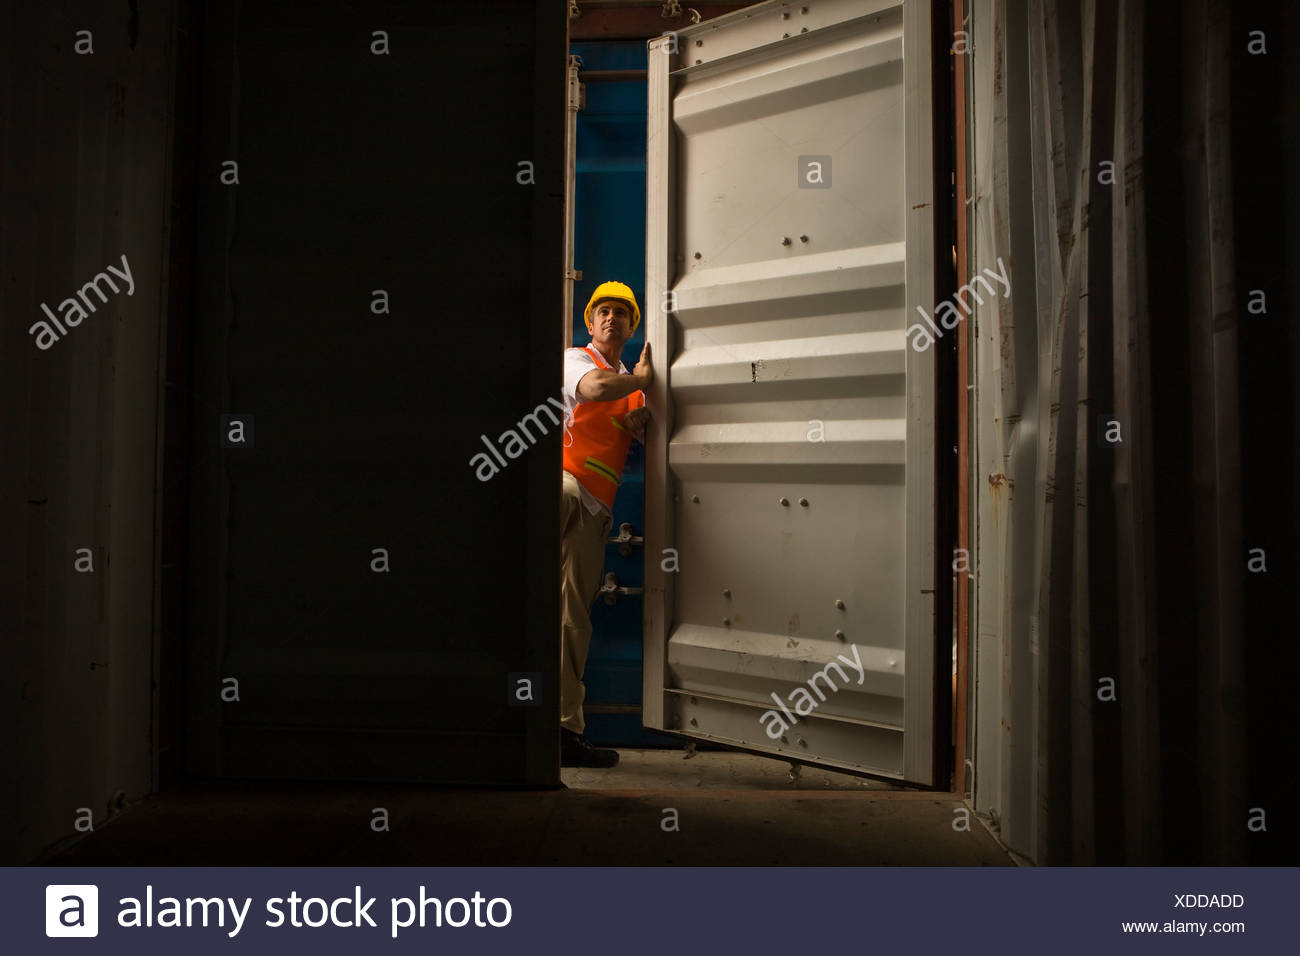 Cargo Door Stock Photos Images Alamy Electronic Filters Eg1003 Mid Adult Man Standing At The Of A Container Image